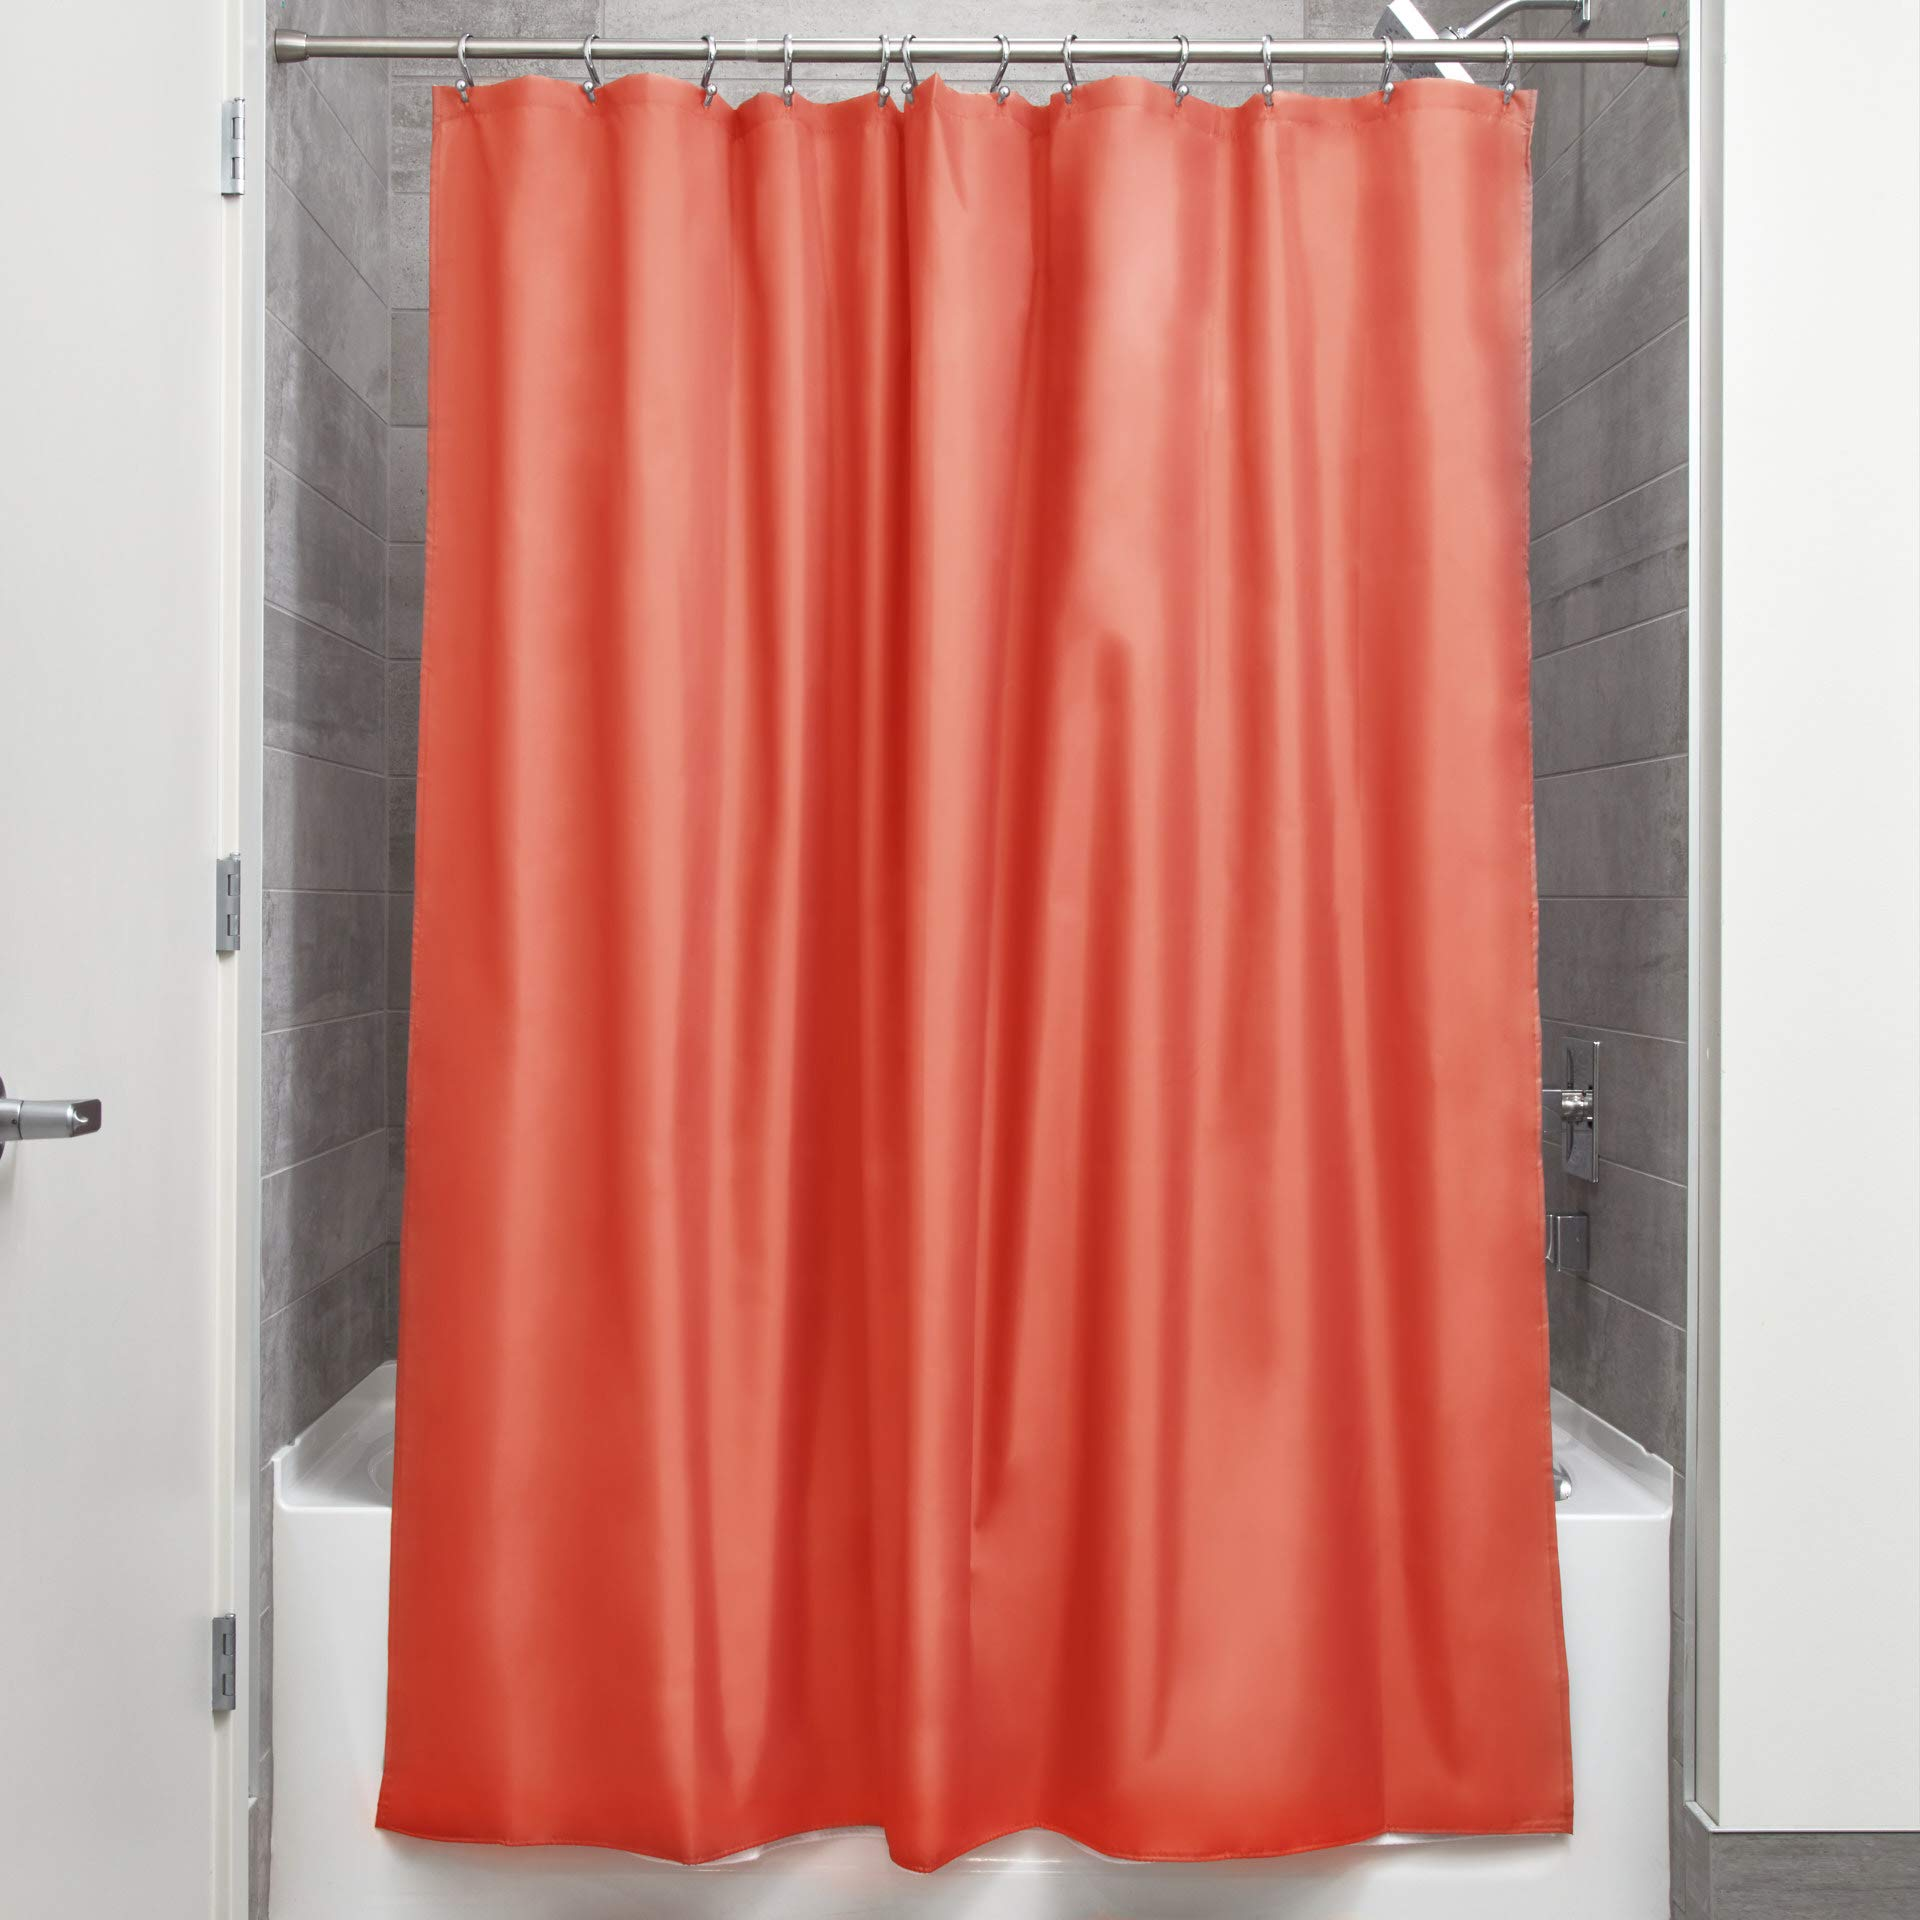 """iDesign Fabric Shower Curtain, Water-Repellent and Mold- and Mildew-Resistant Liner for Master, Guest, Kid's, College Dorm Bathroom, 72"""" x 72"""" - Orange"""